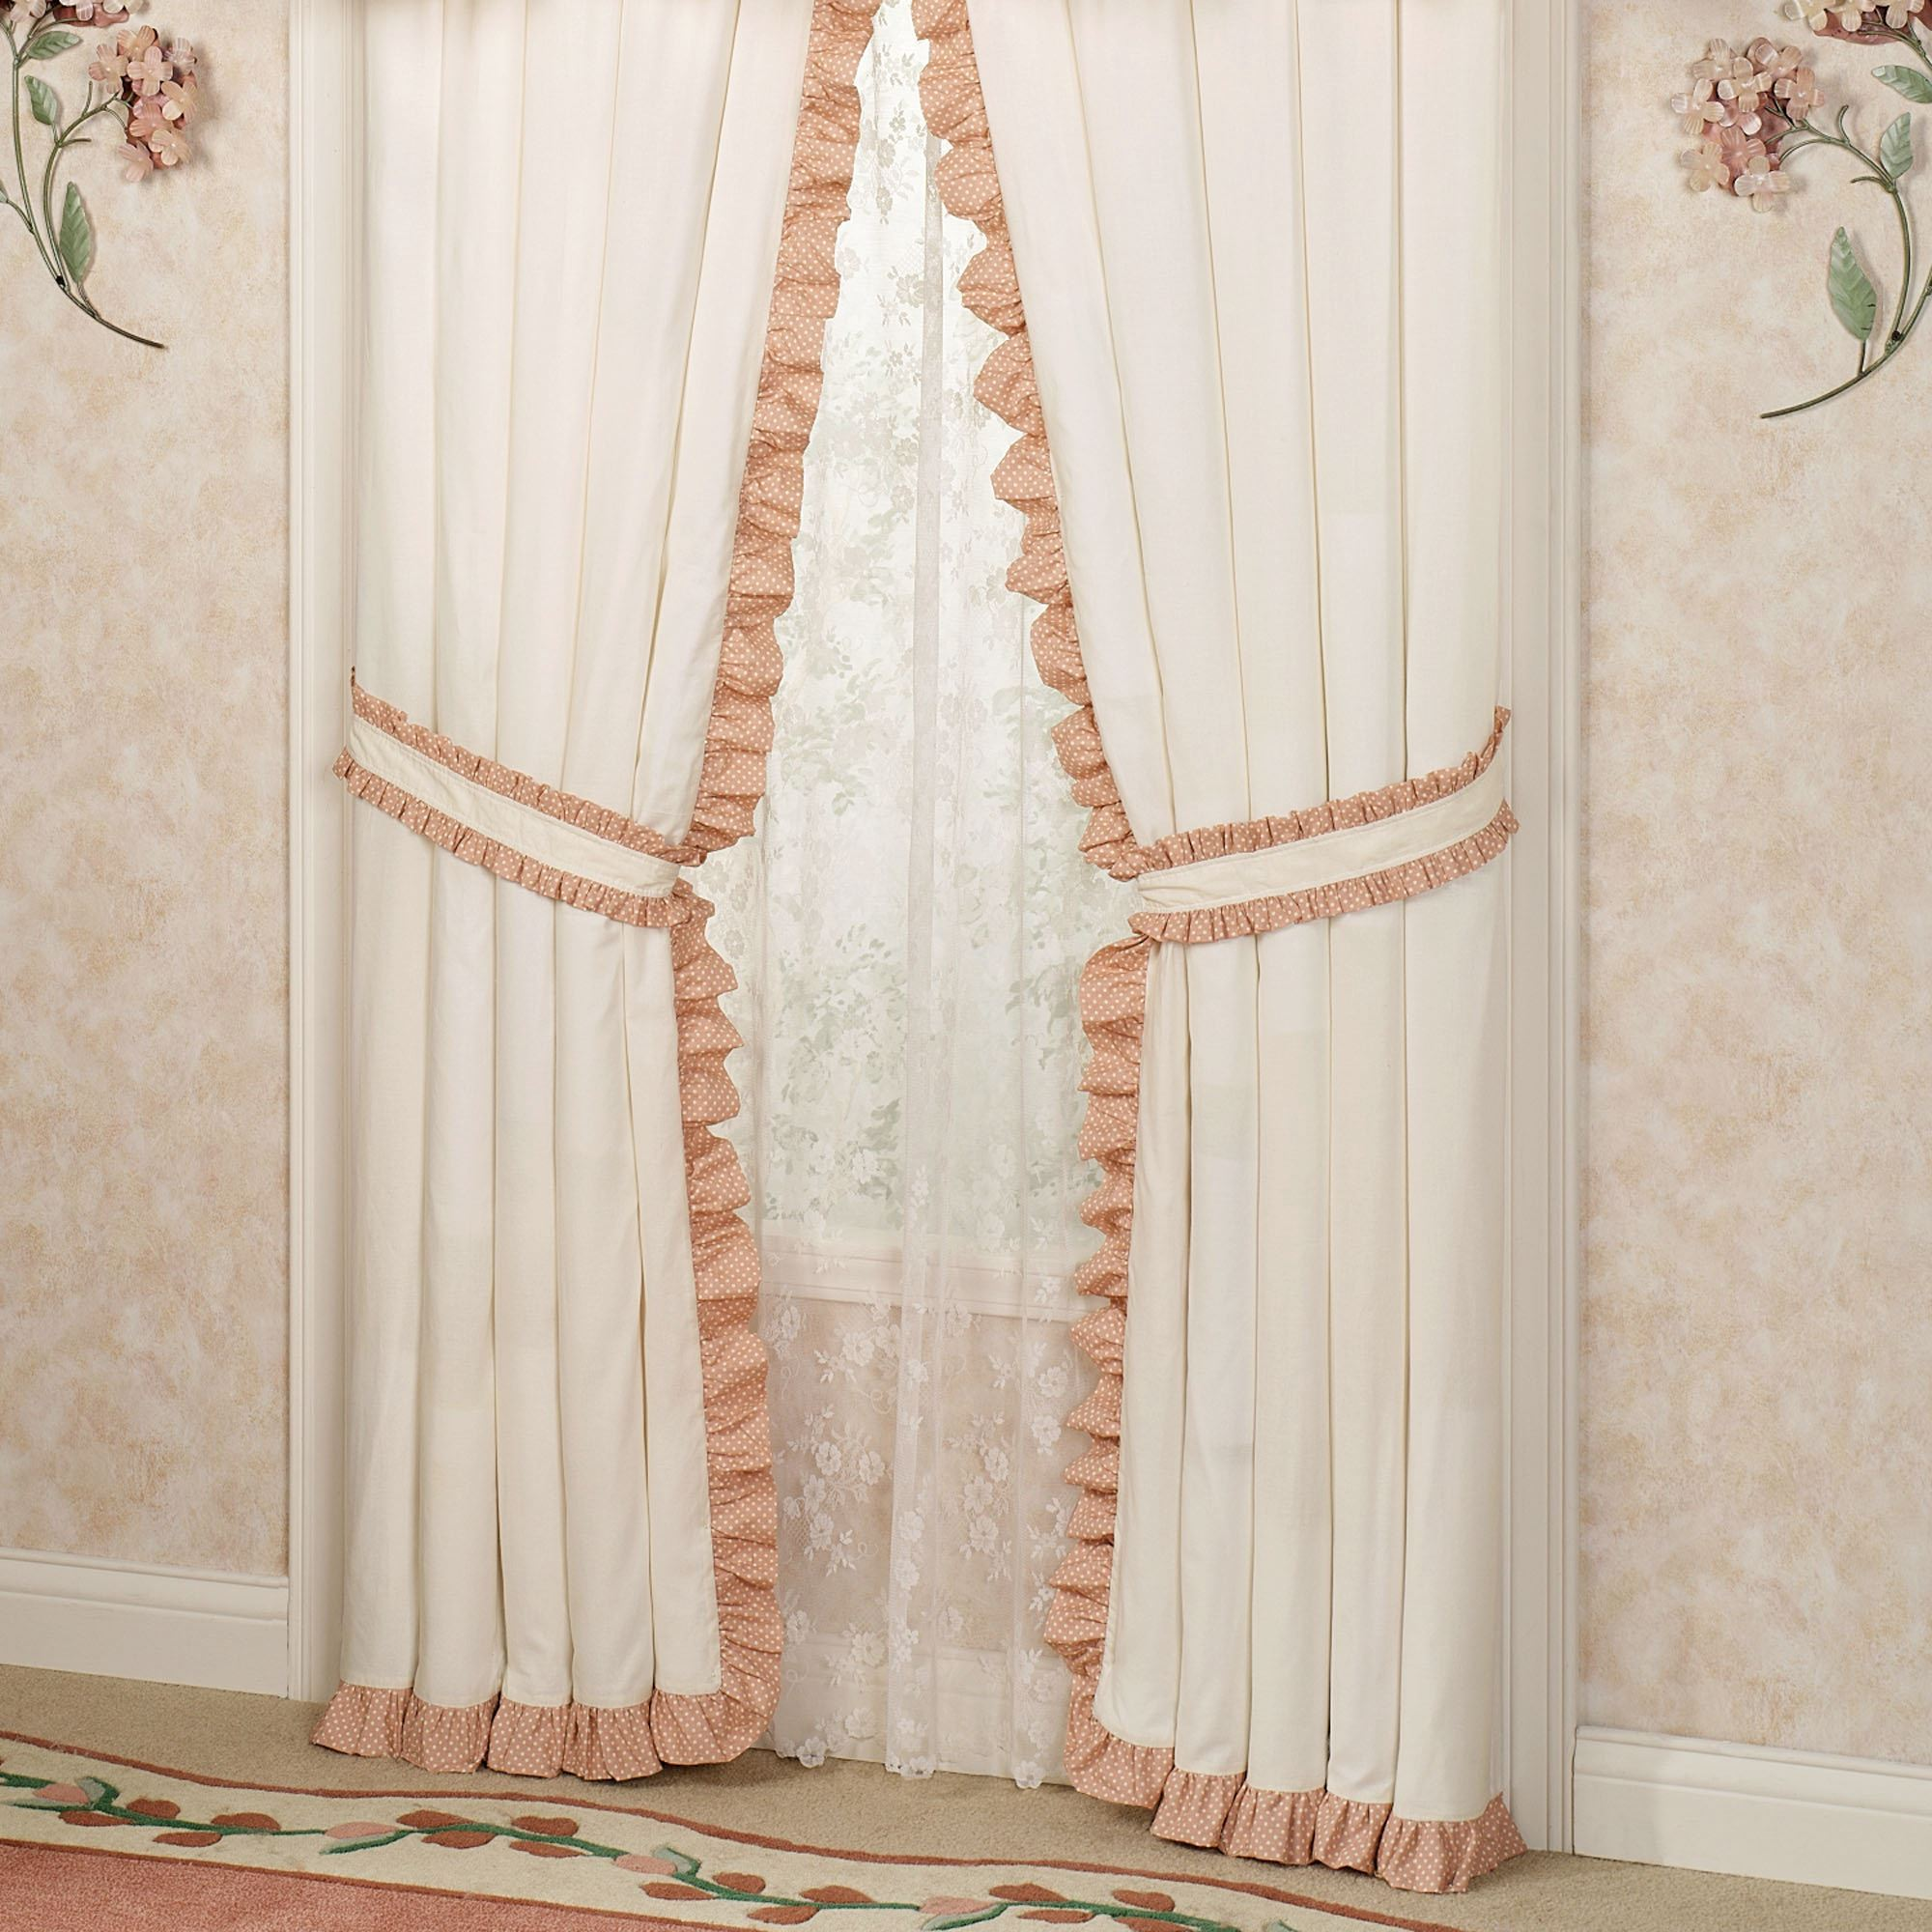 Melody Floral Ruffled Window Treatments